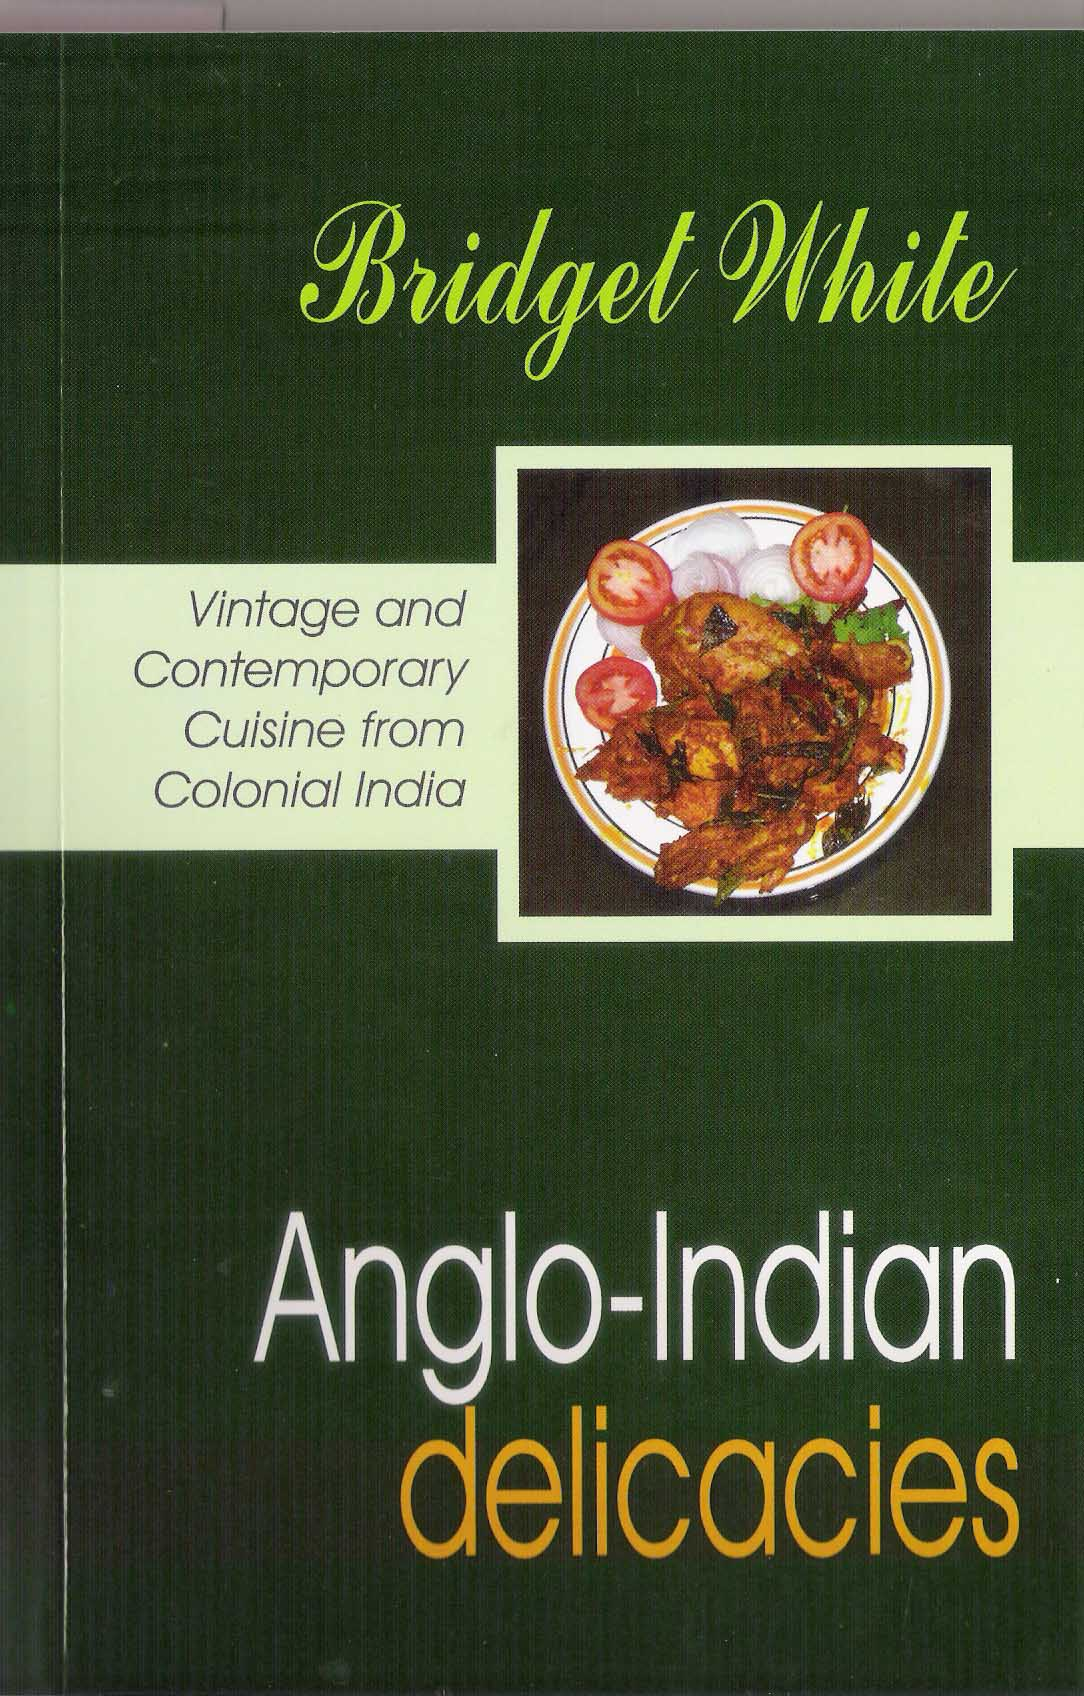 Recipe books recipes for delicious anglo indian food for Anglo indian cuisine